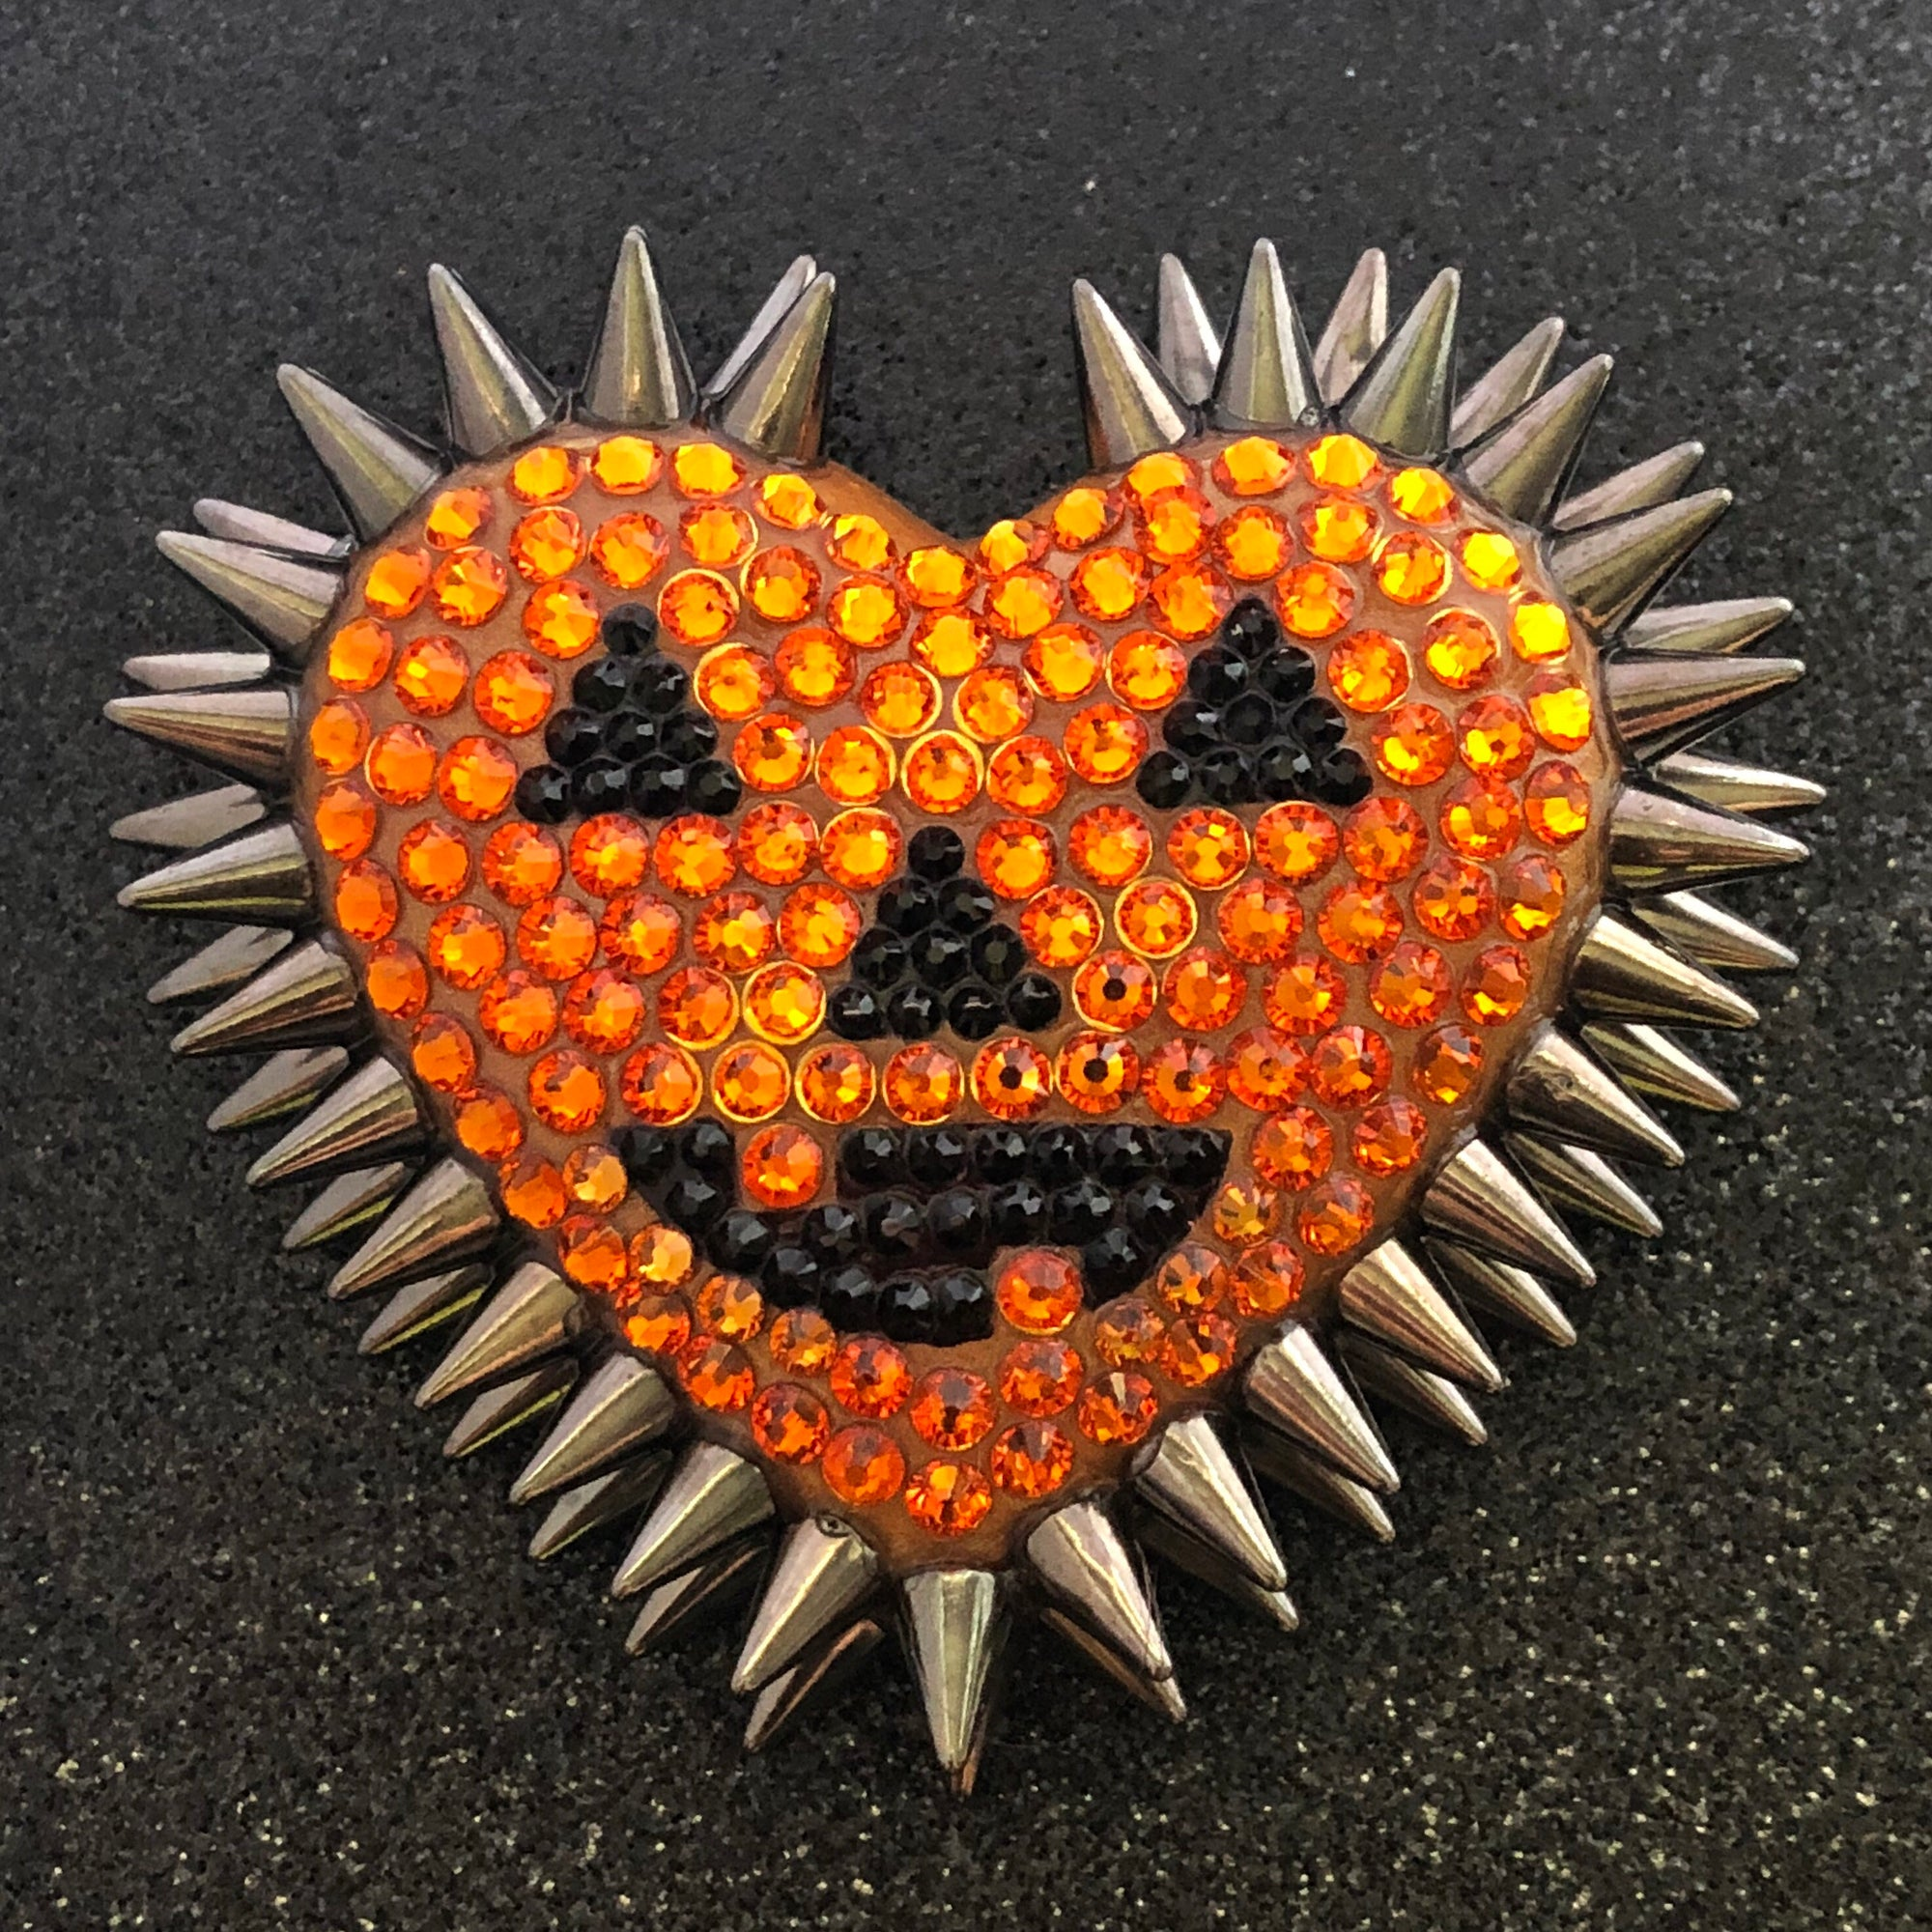 Classic Spiked & Pavéd Heart Necklace in Jack O'Lantern